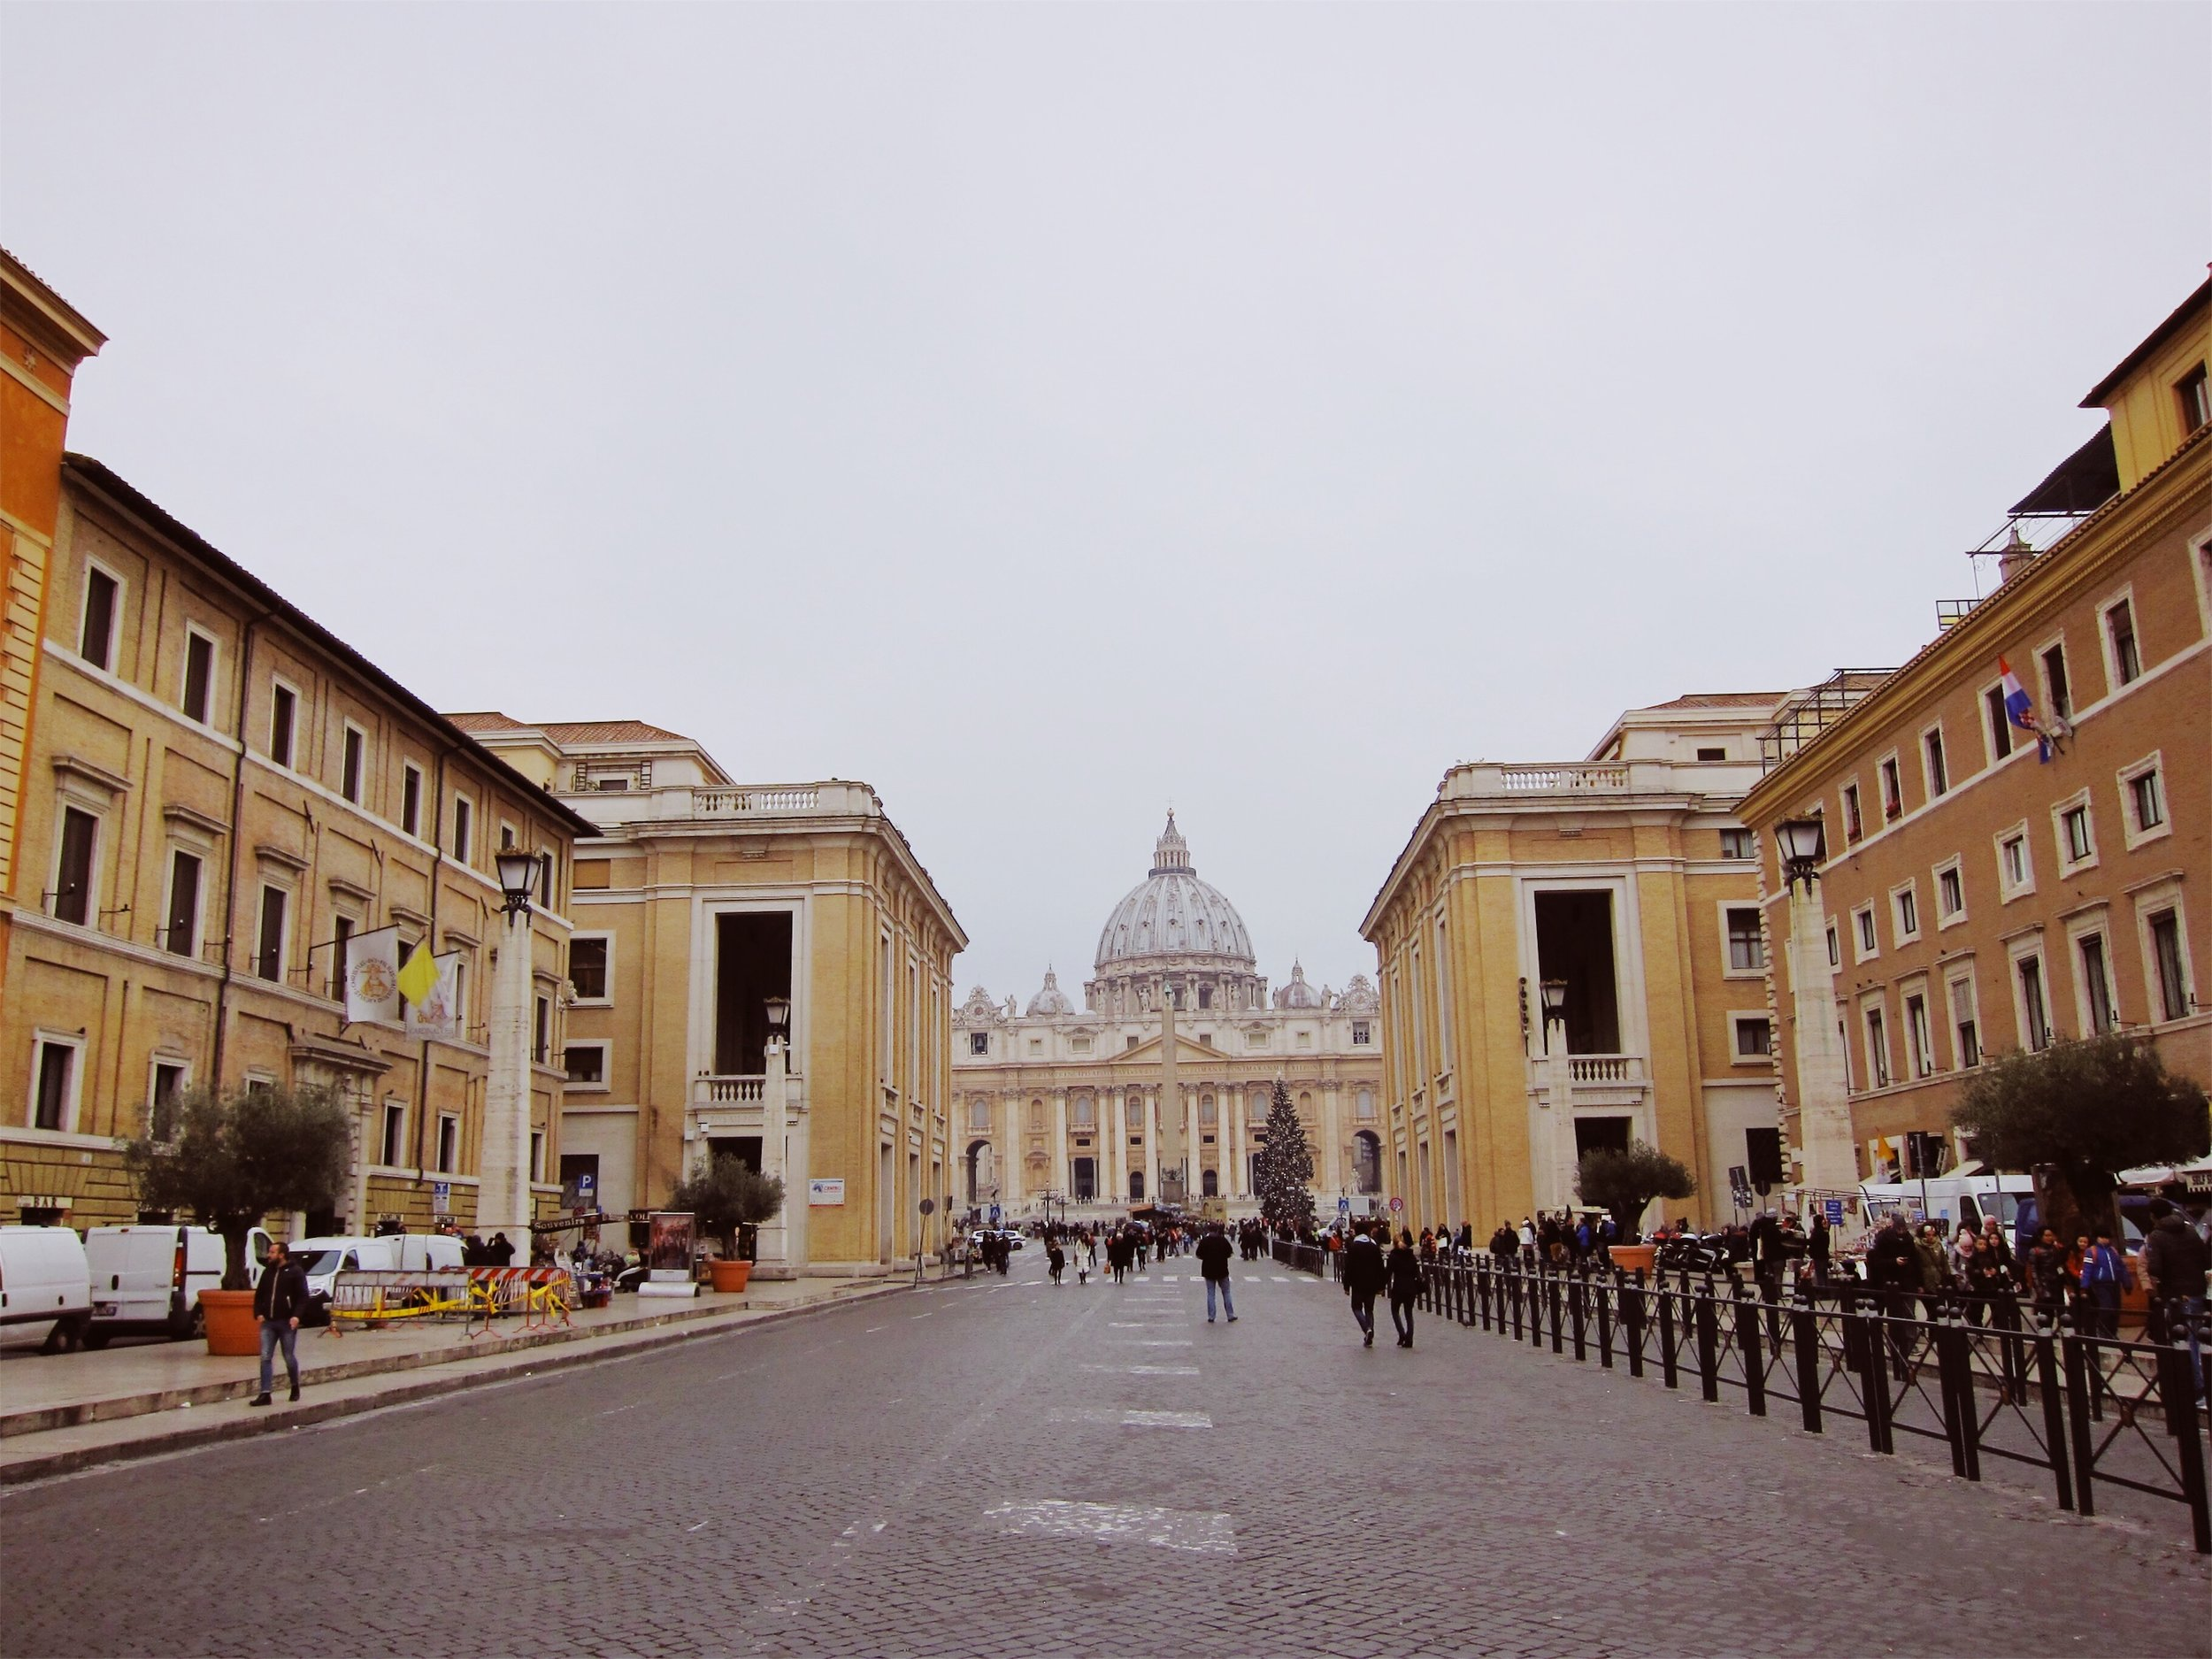 View of the Vatican from the ground